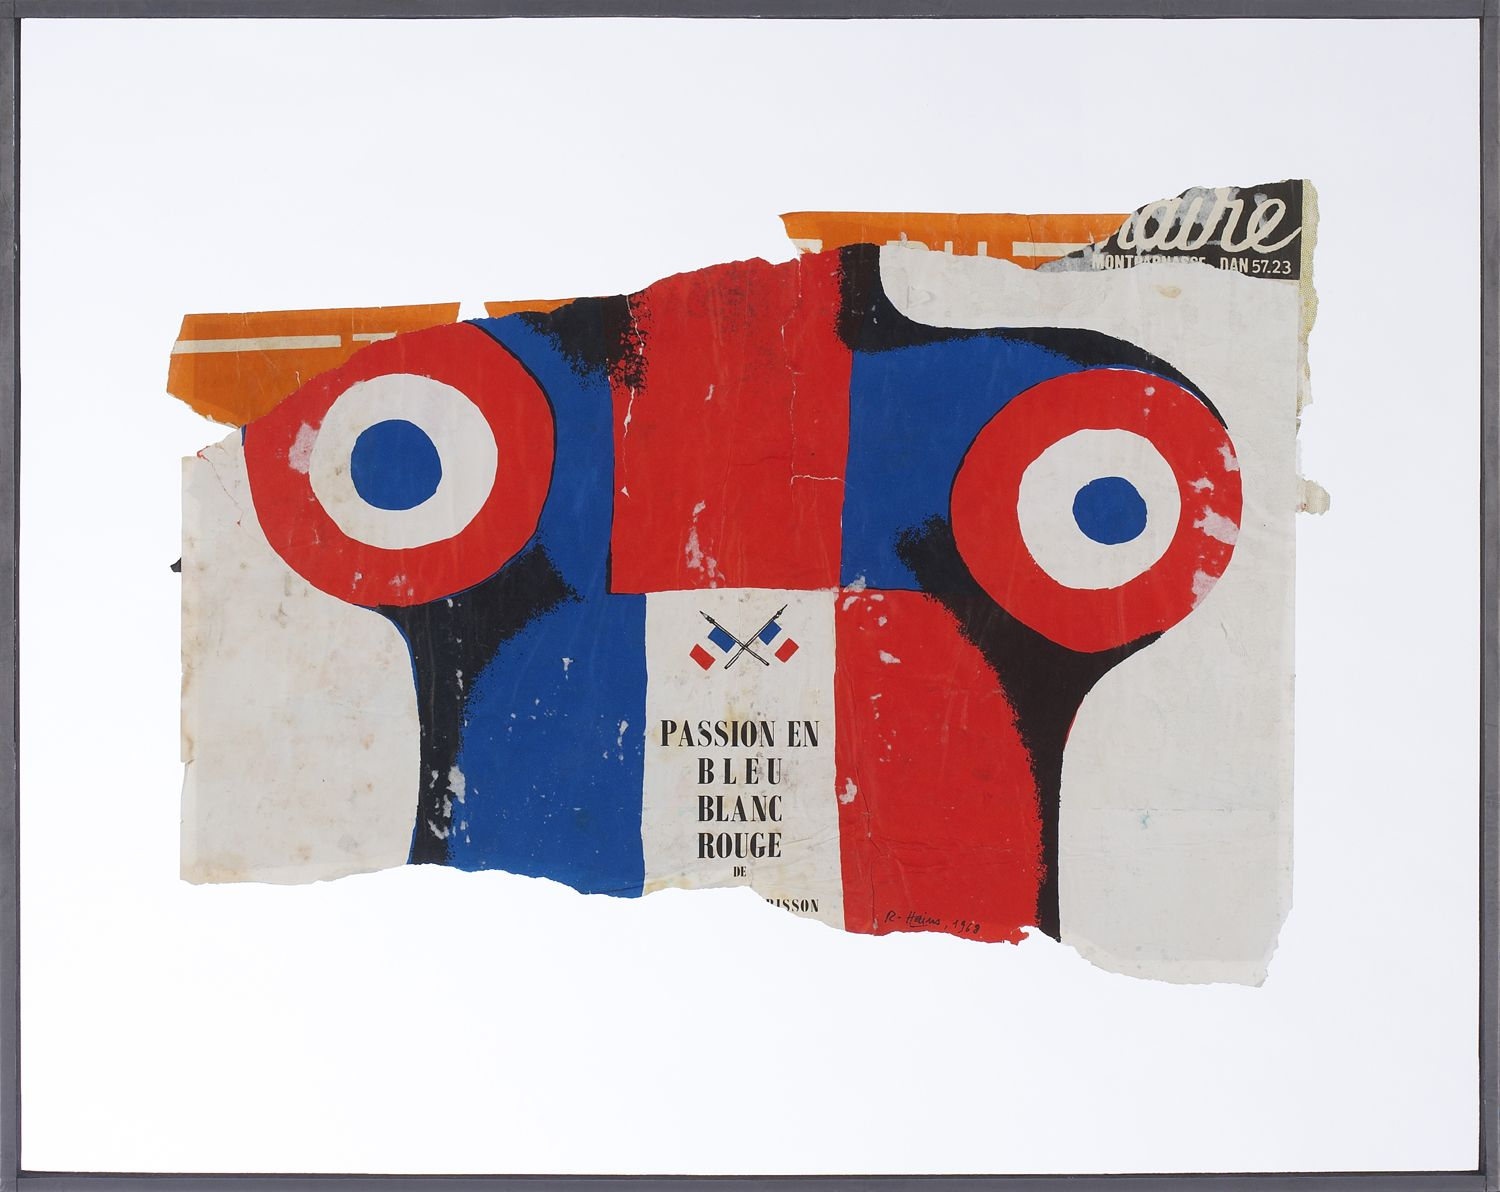 passion-en-bleu-blanc-rouge-1968